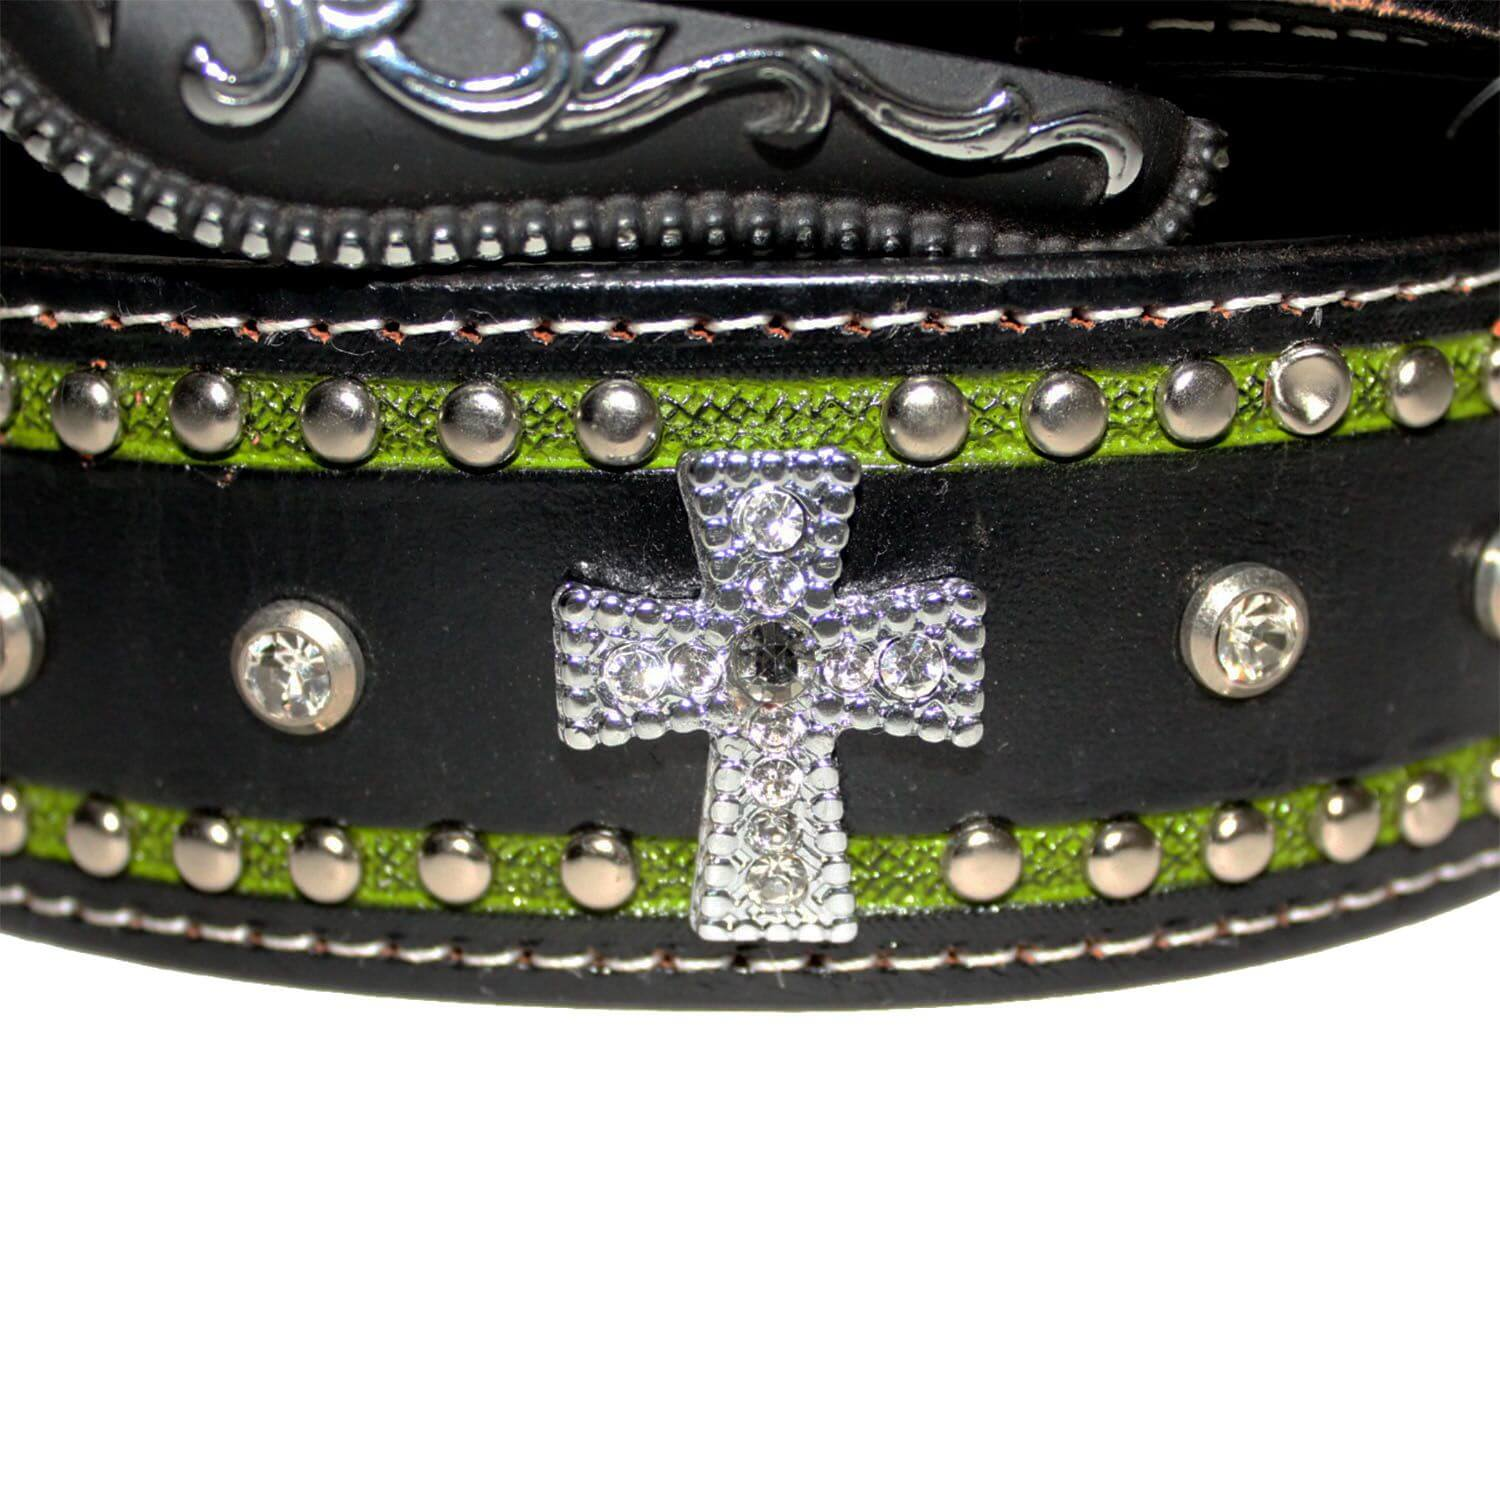 Cinto Arizona Belts Preto Verde 7099